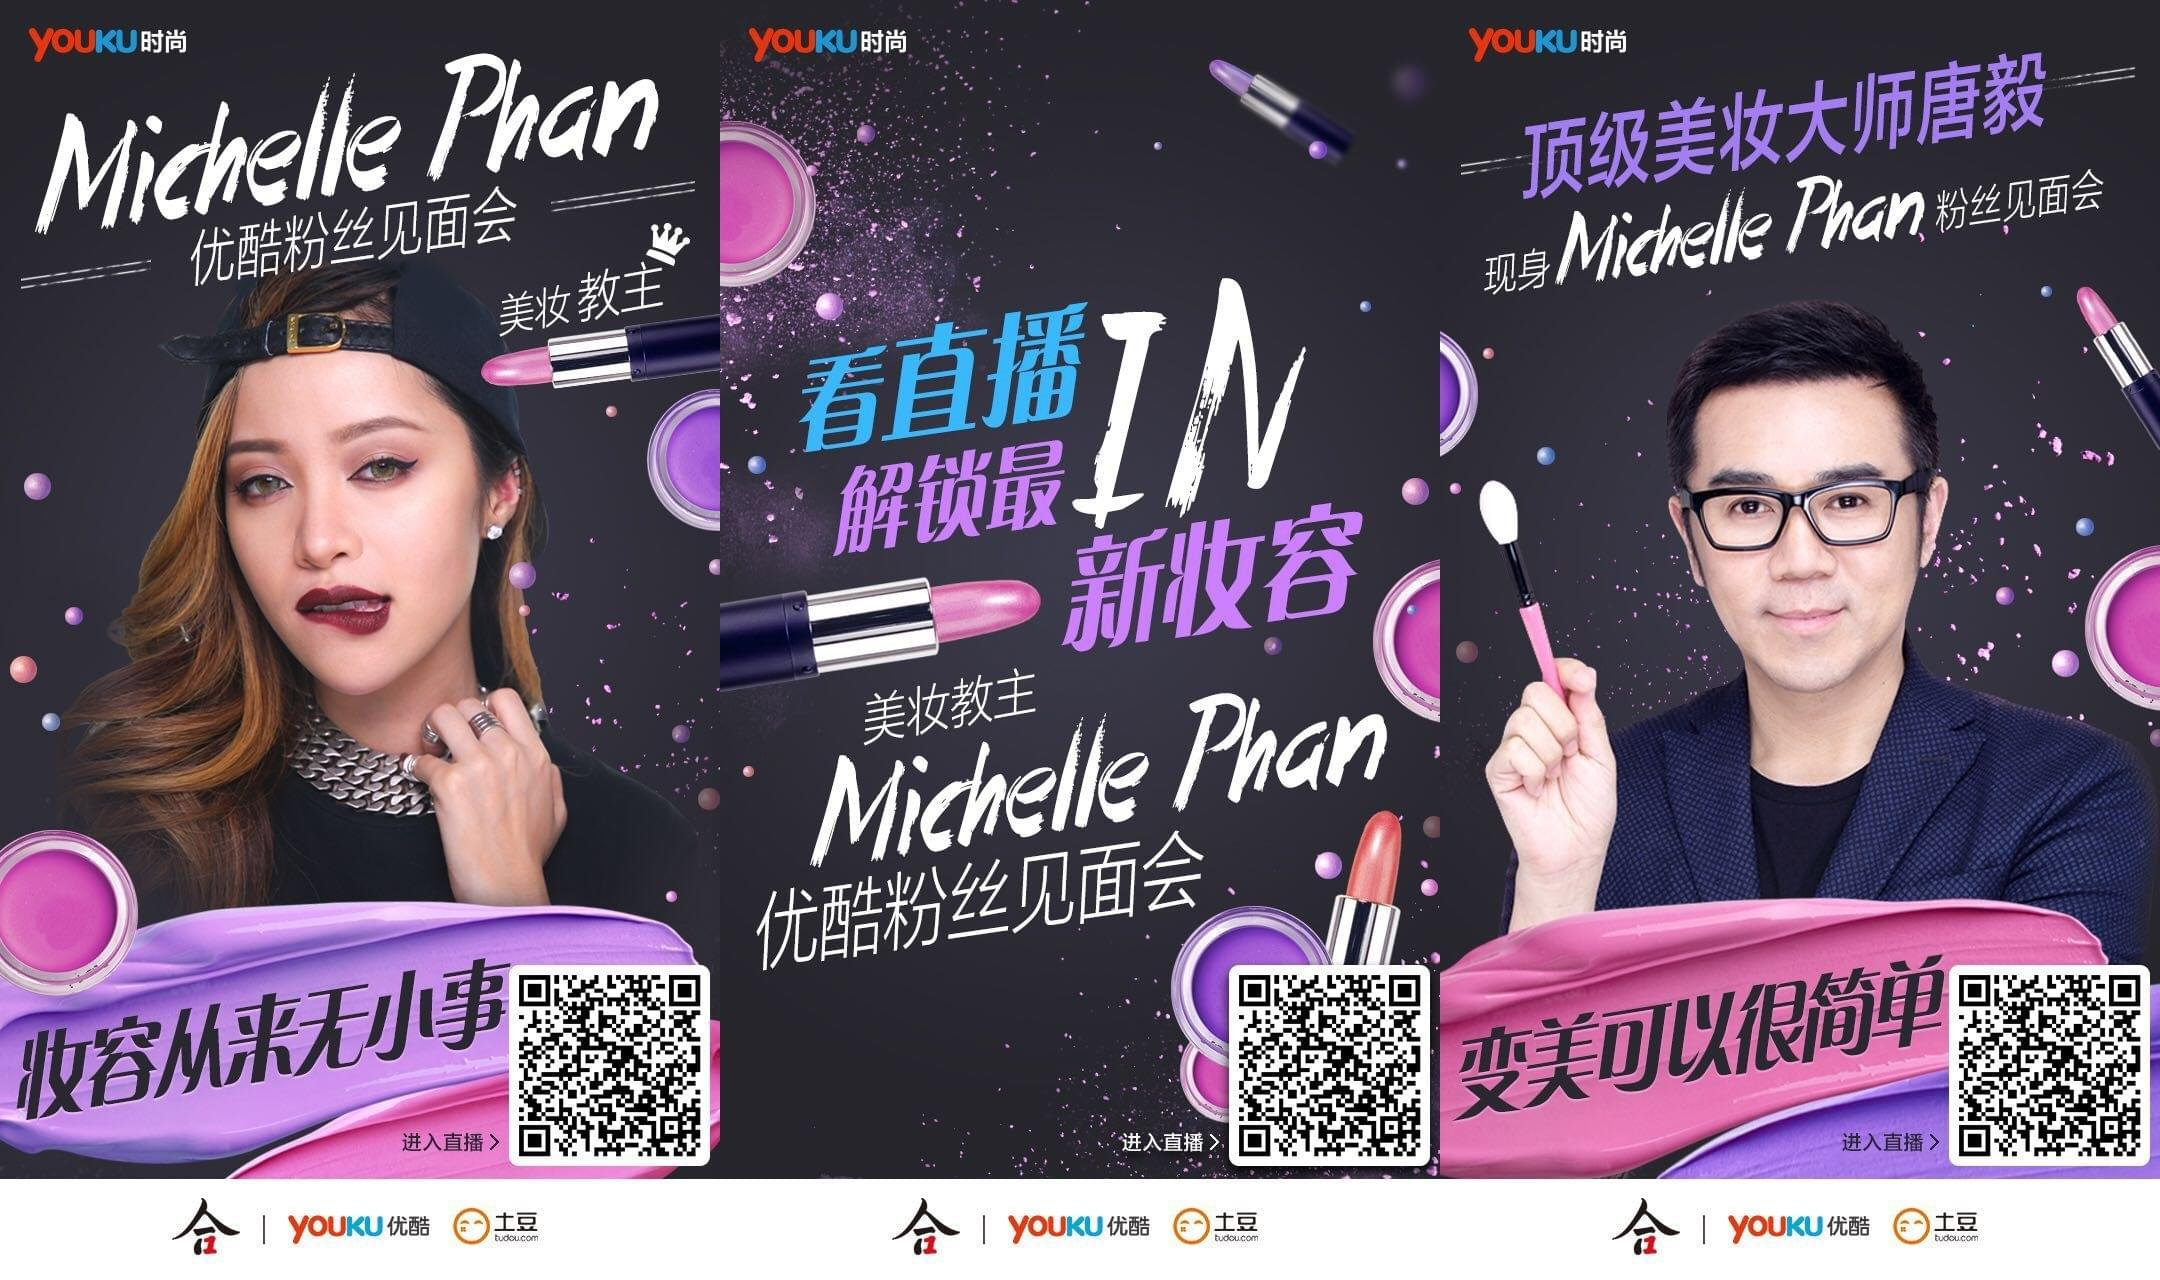 Michelle Phan develop China market through Youku